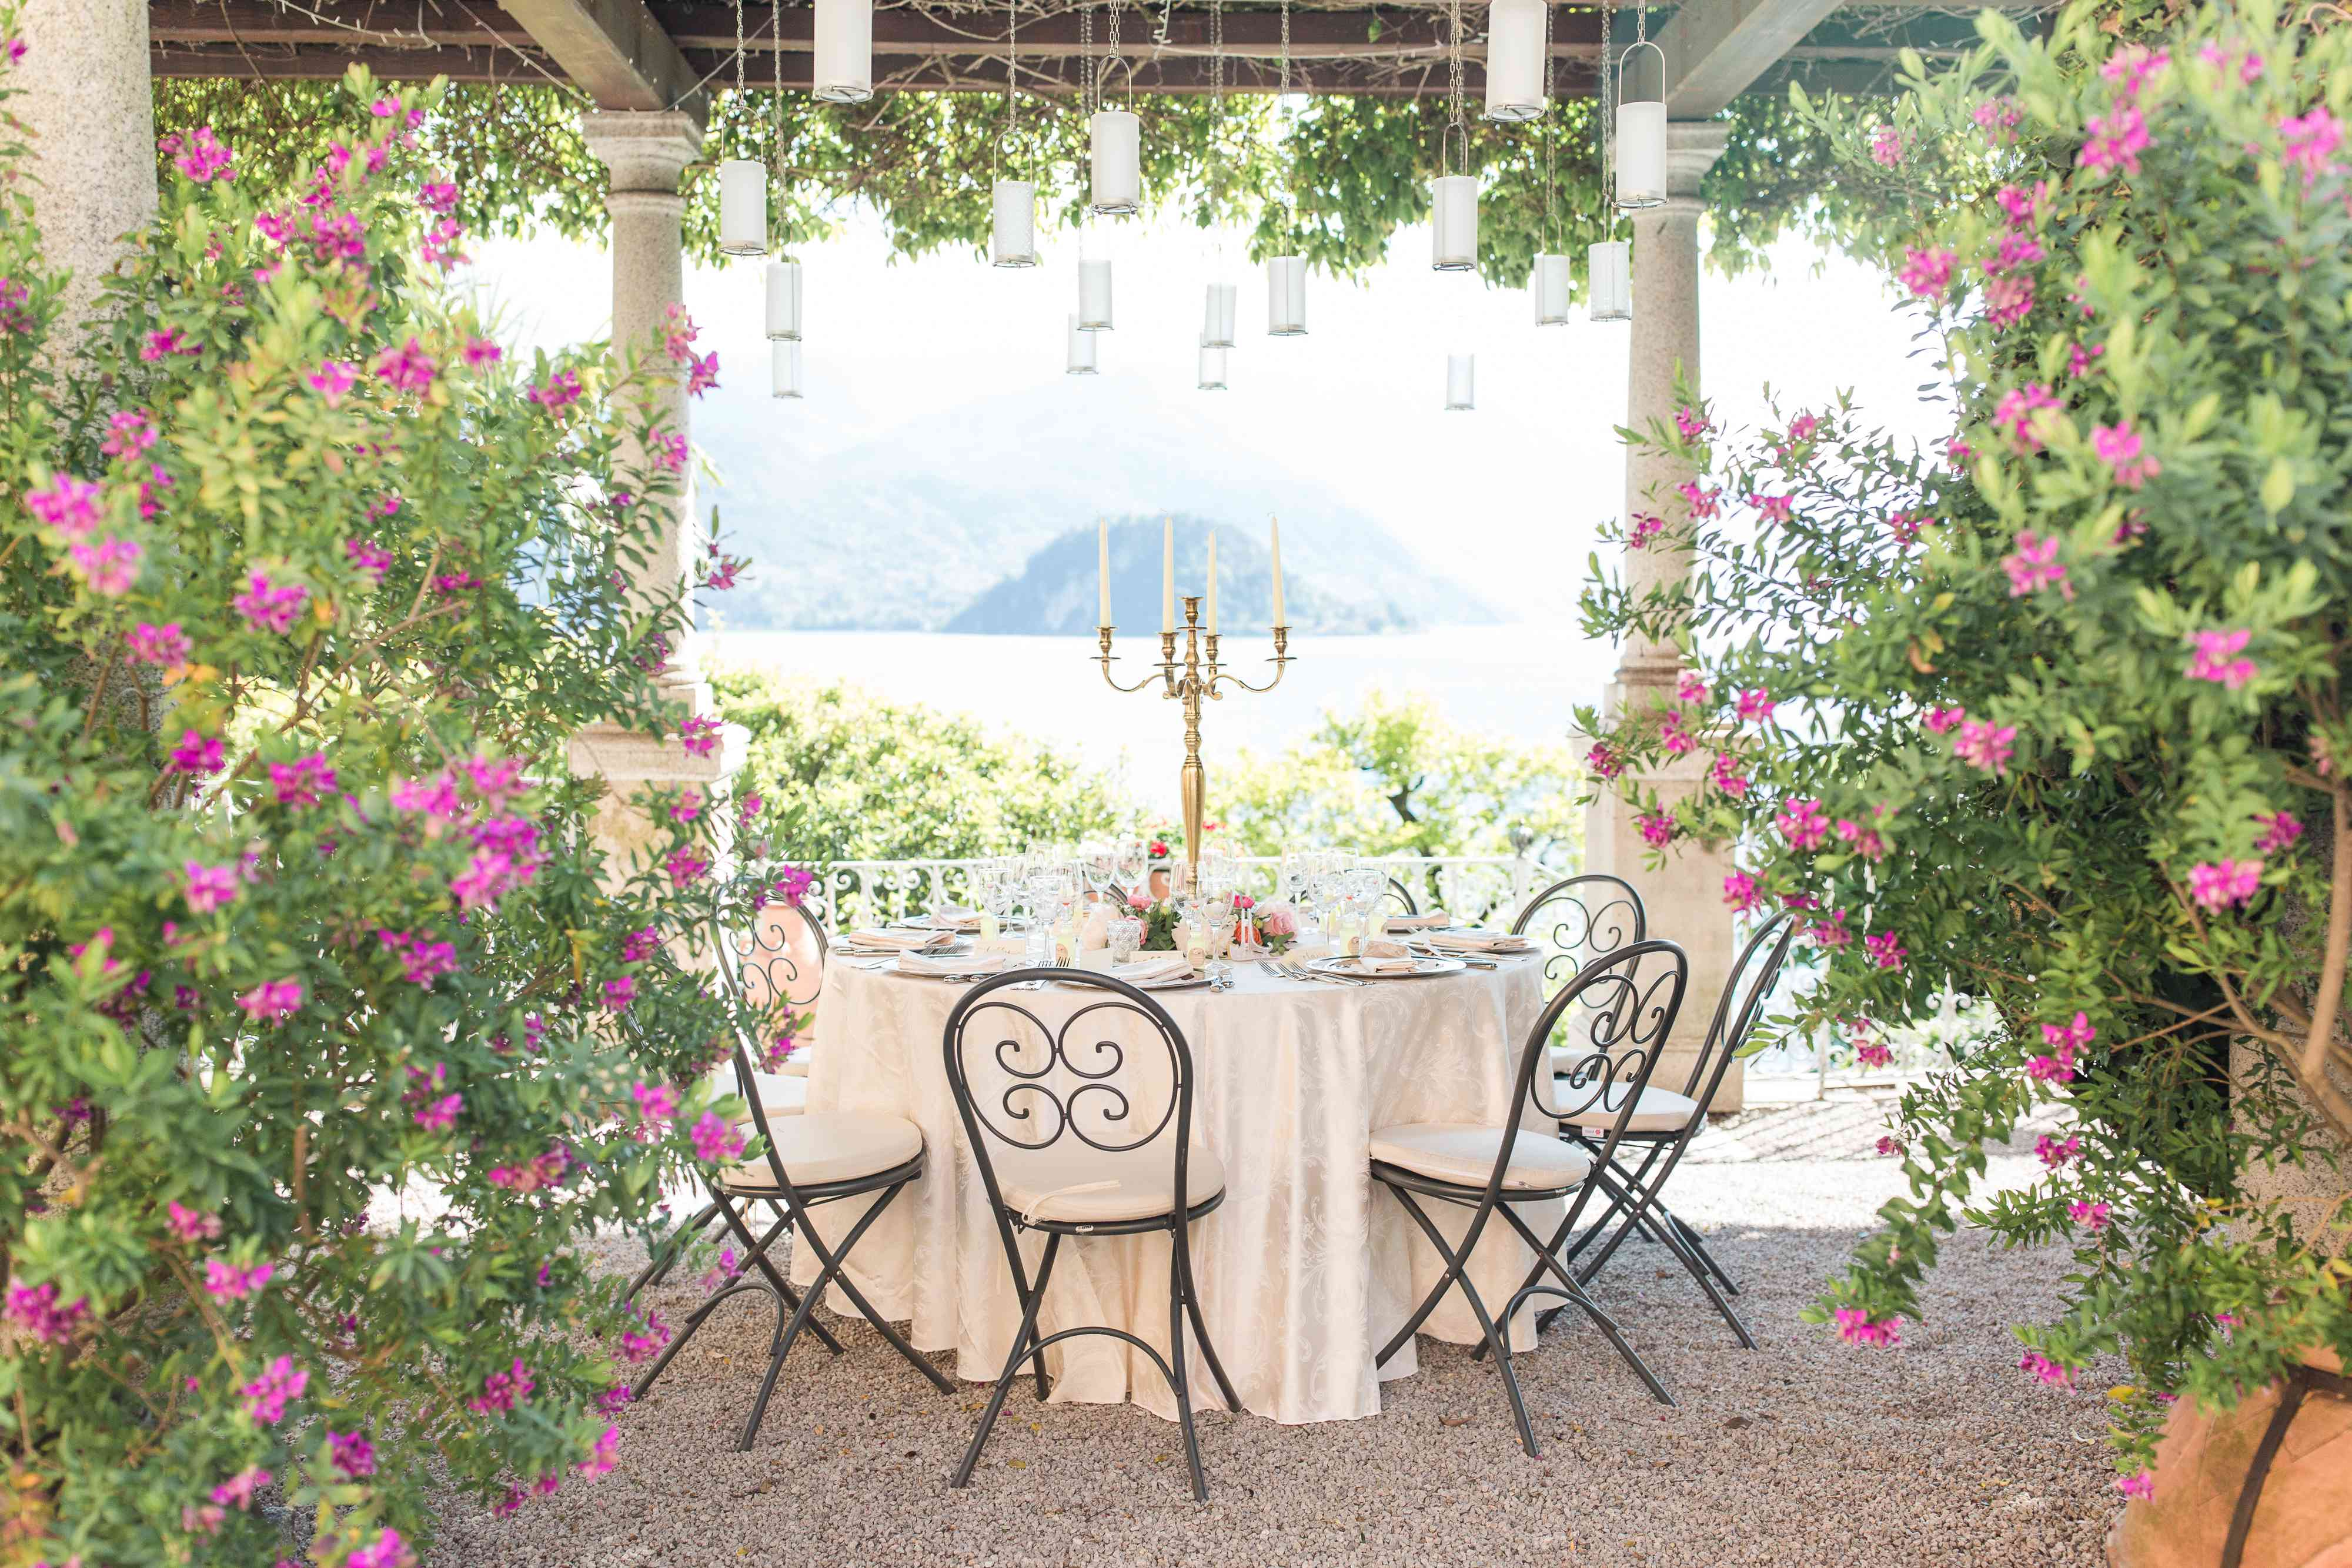 <p>Floral table setting</p><br><br>